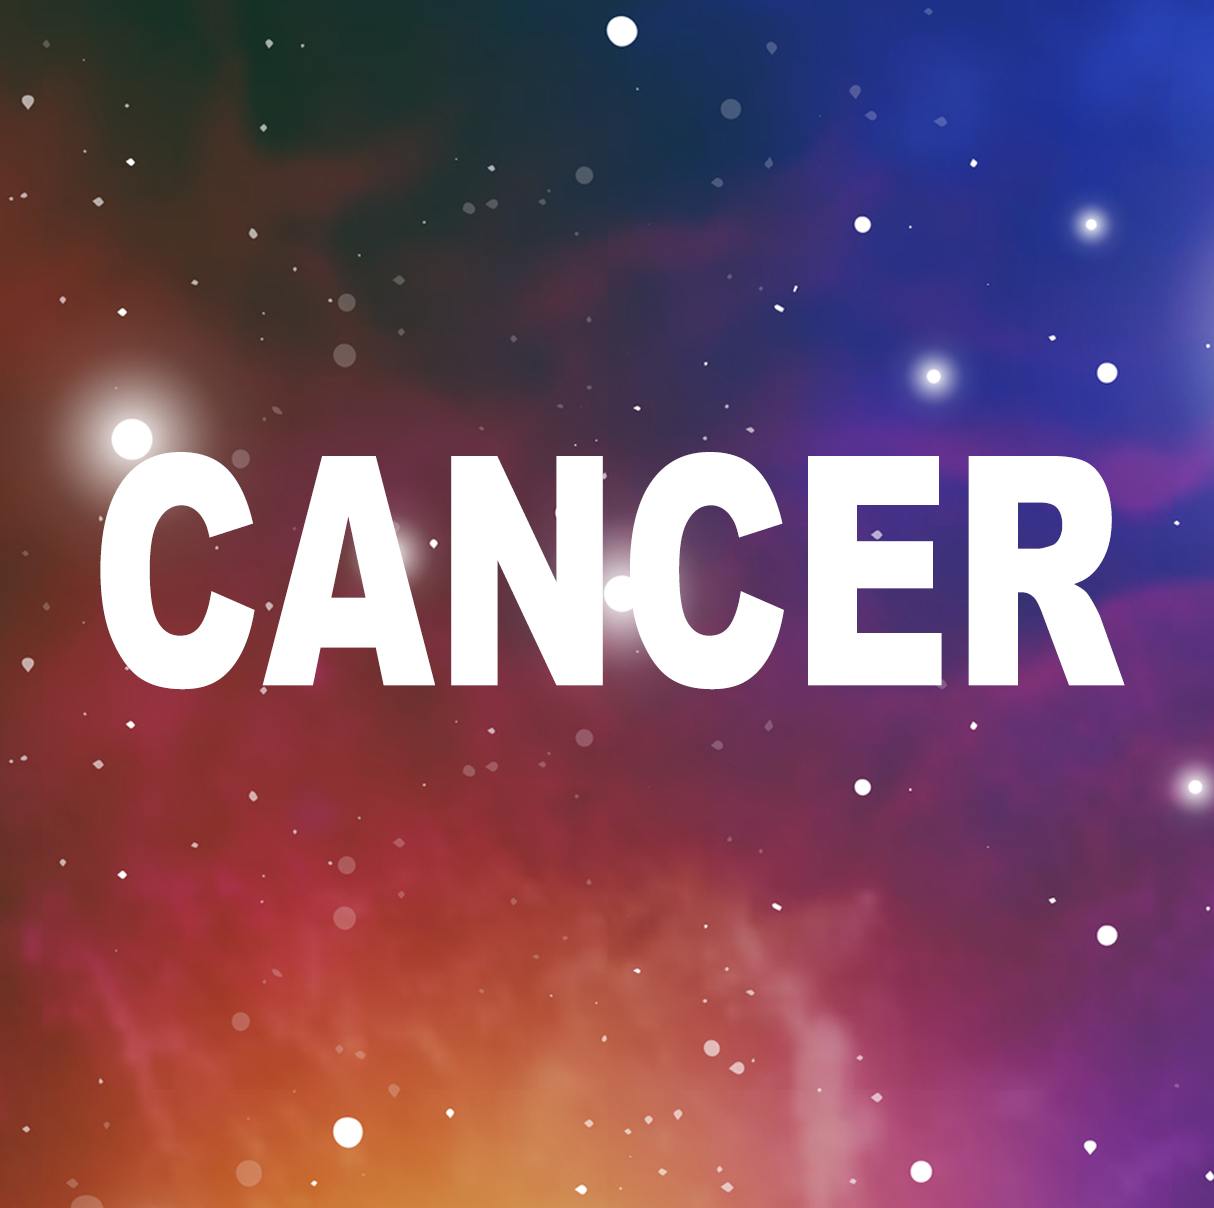 cancer, cancer 2018, cancer horoscope, cancer 2018 horoscope, cancer horoscope 2018